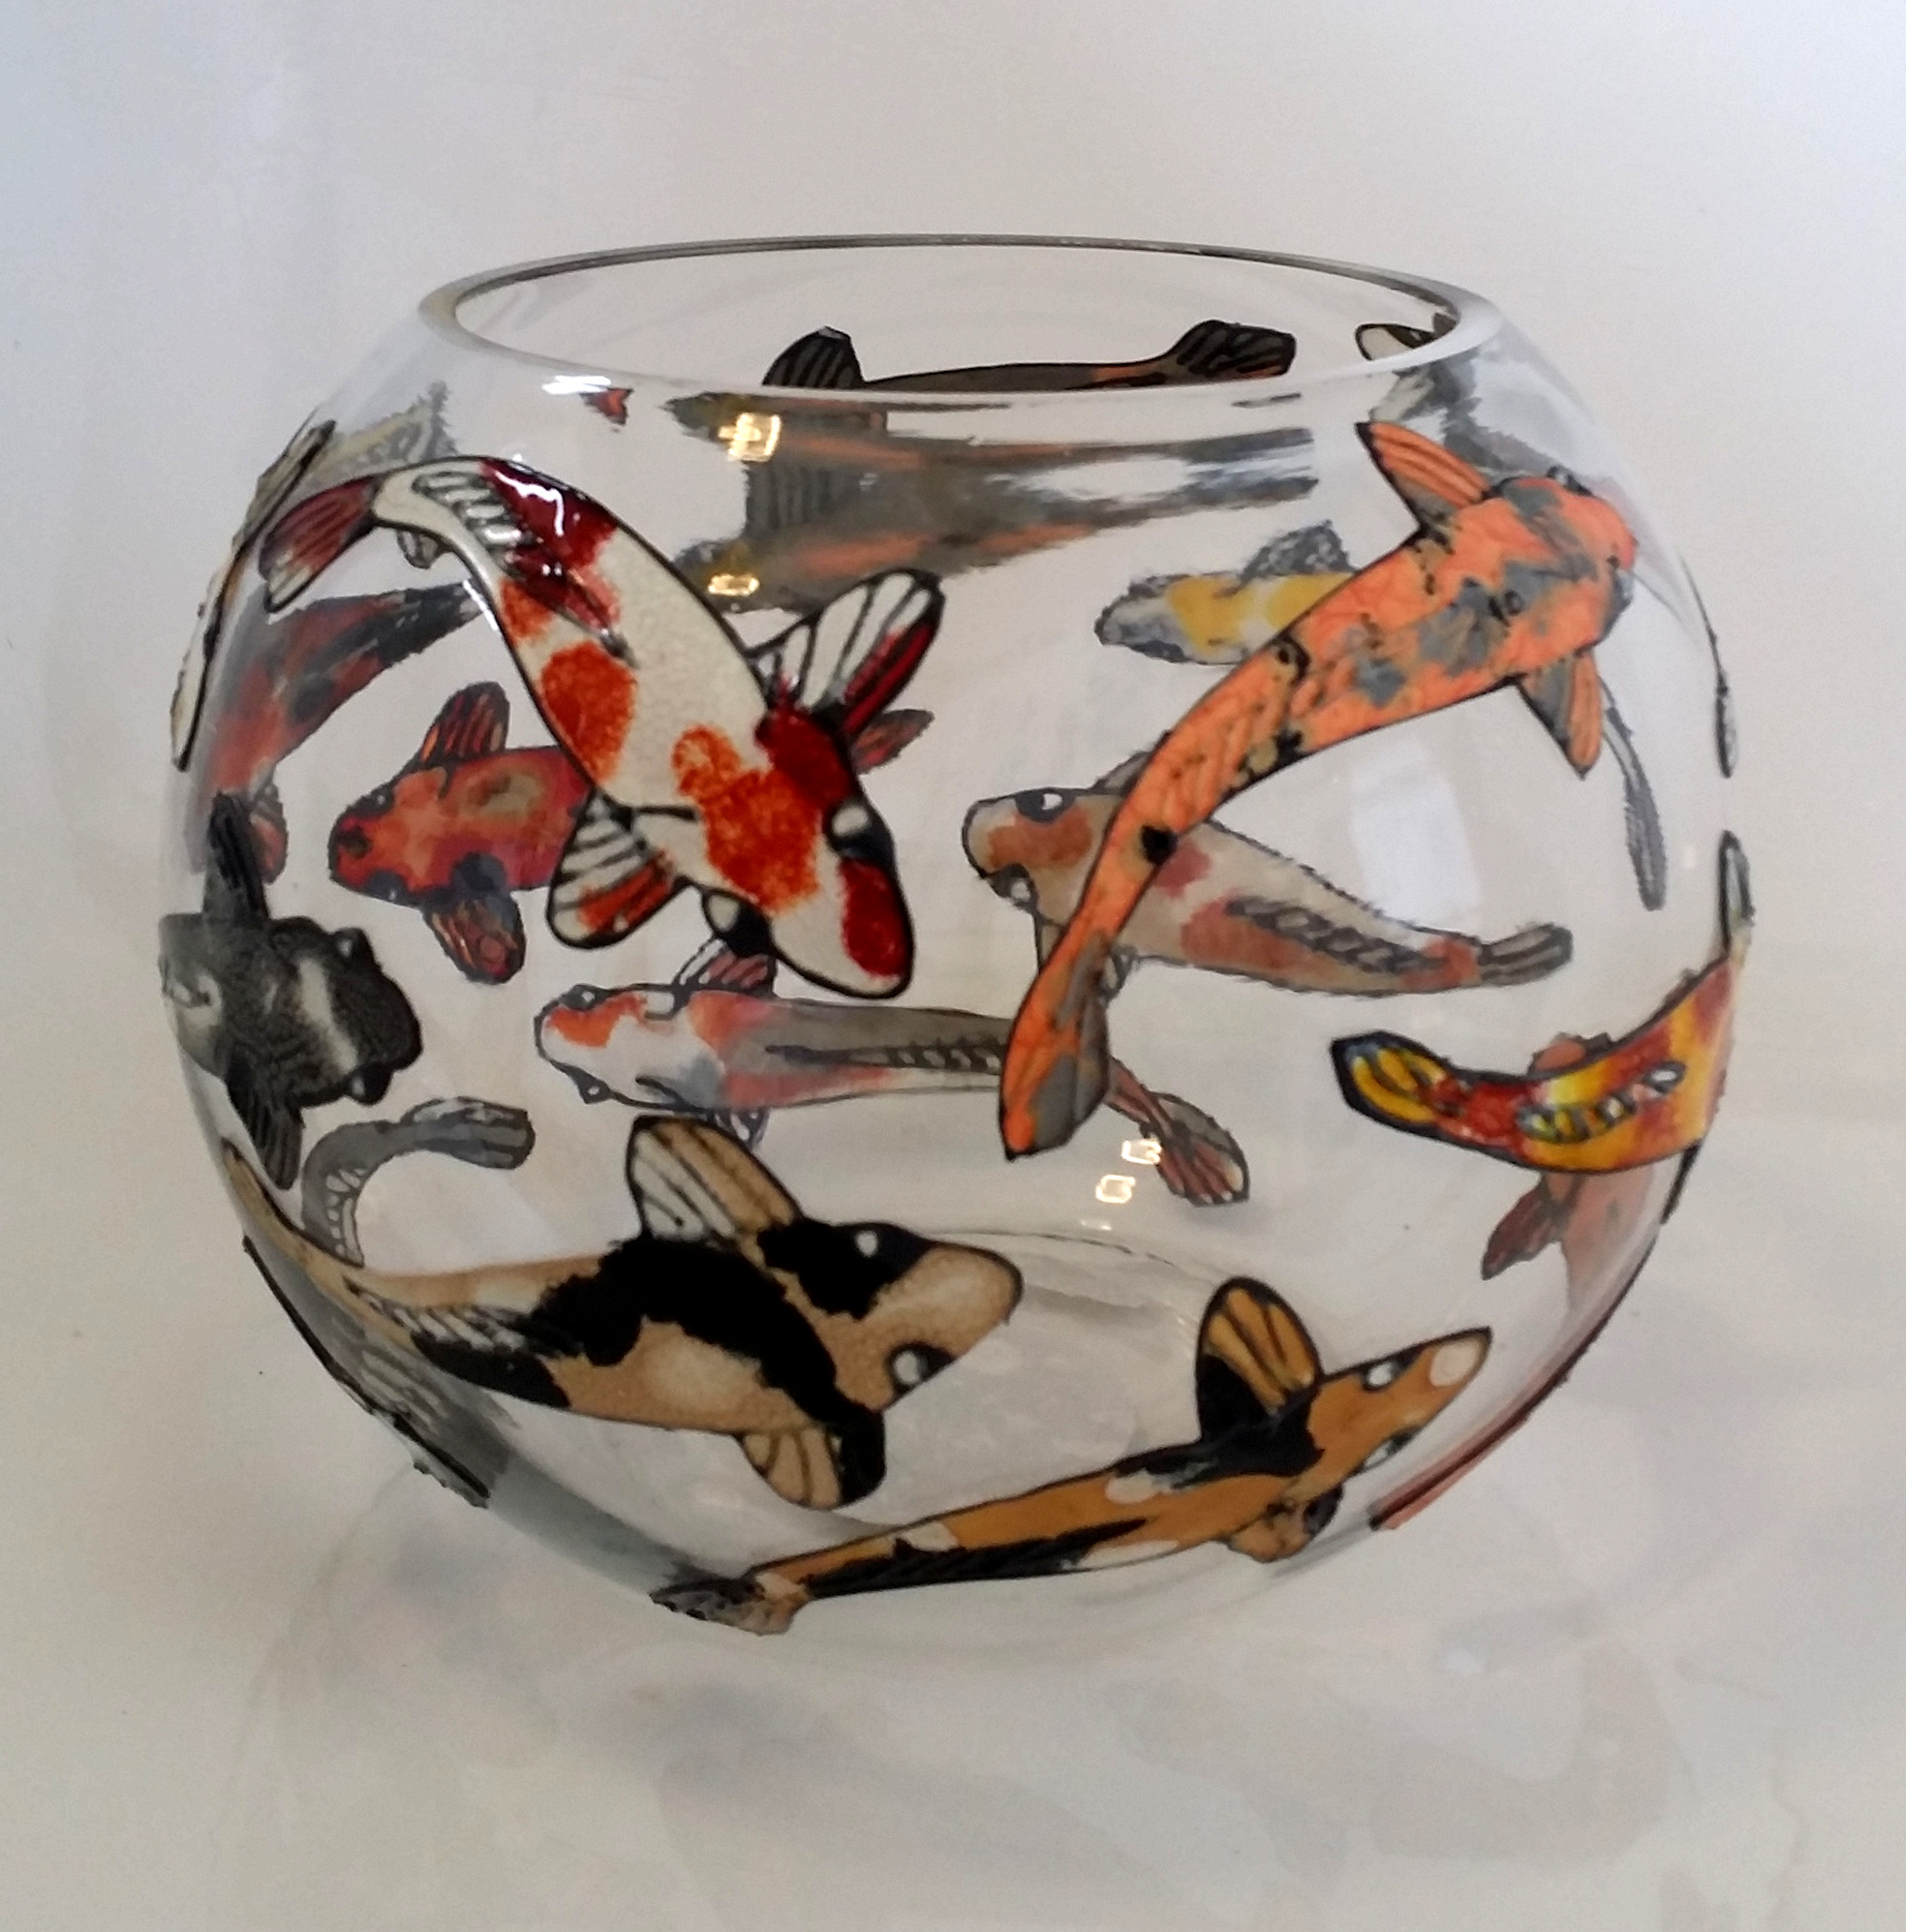 Glass Painted Fish Bowl Project. Step by Step.